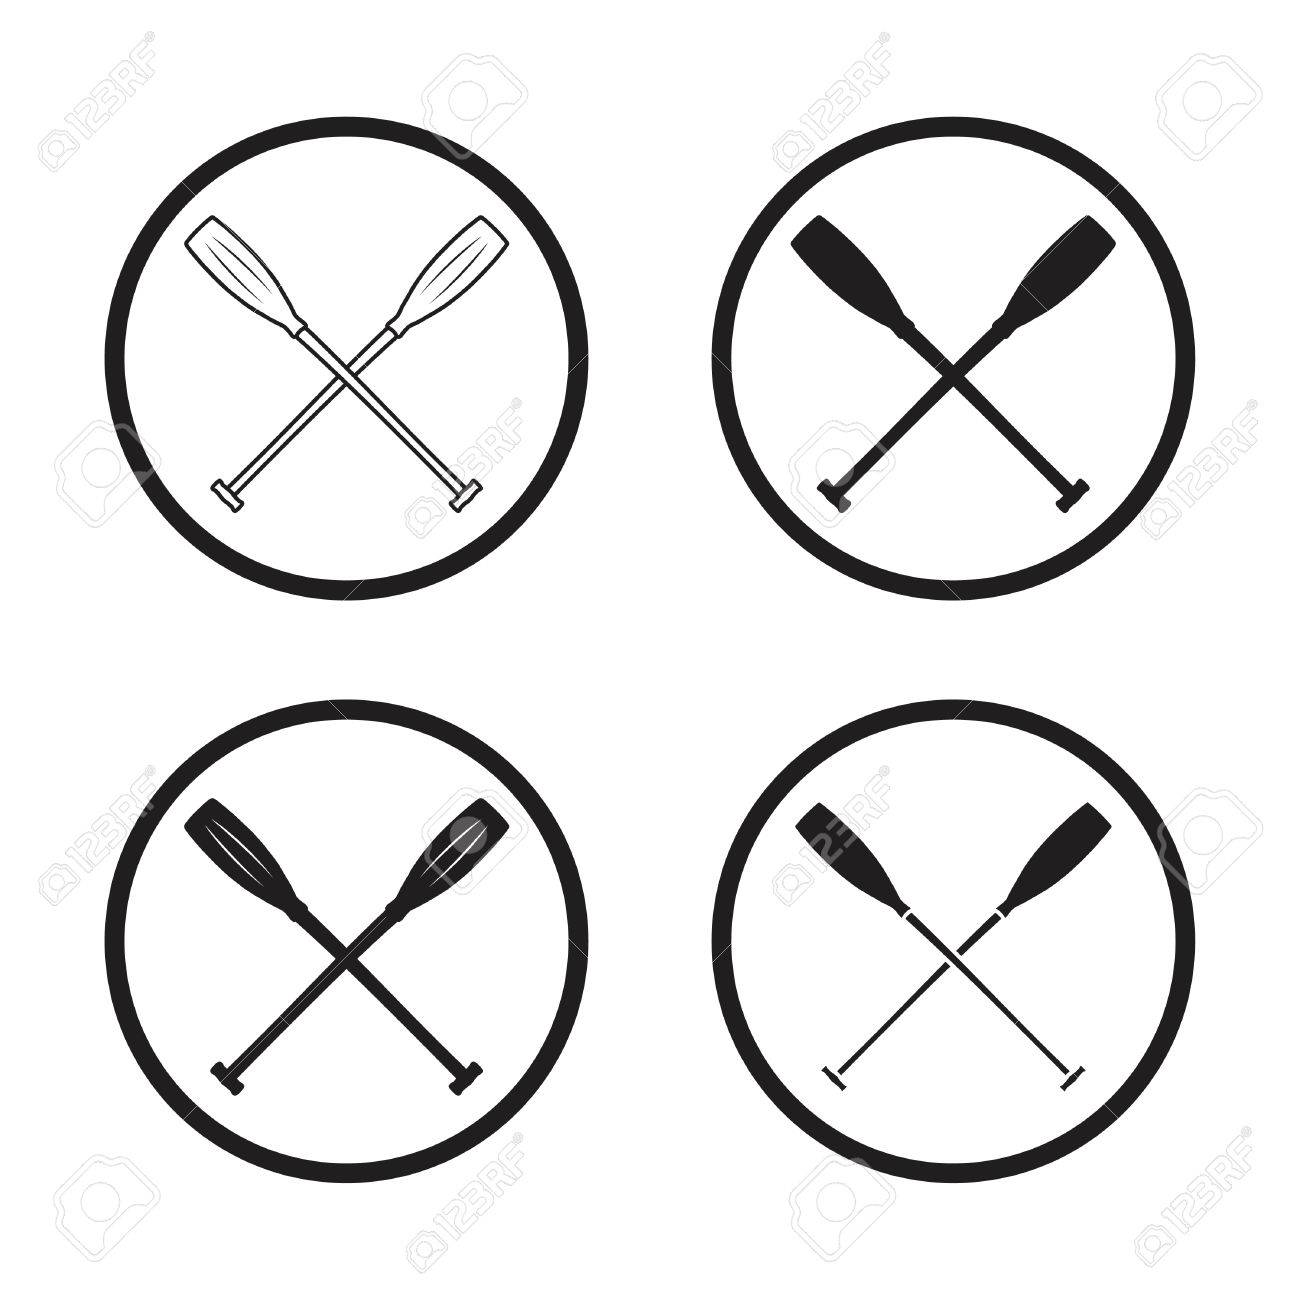 Crossed Canoe Paddles Symbol Vector Stock